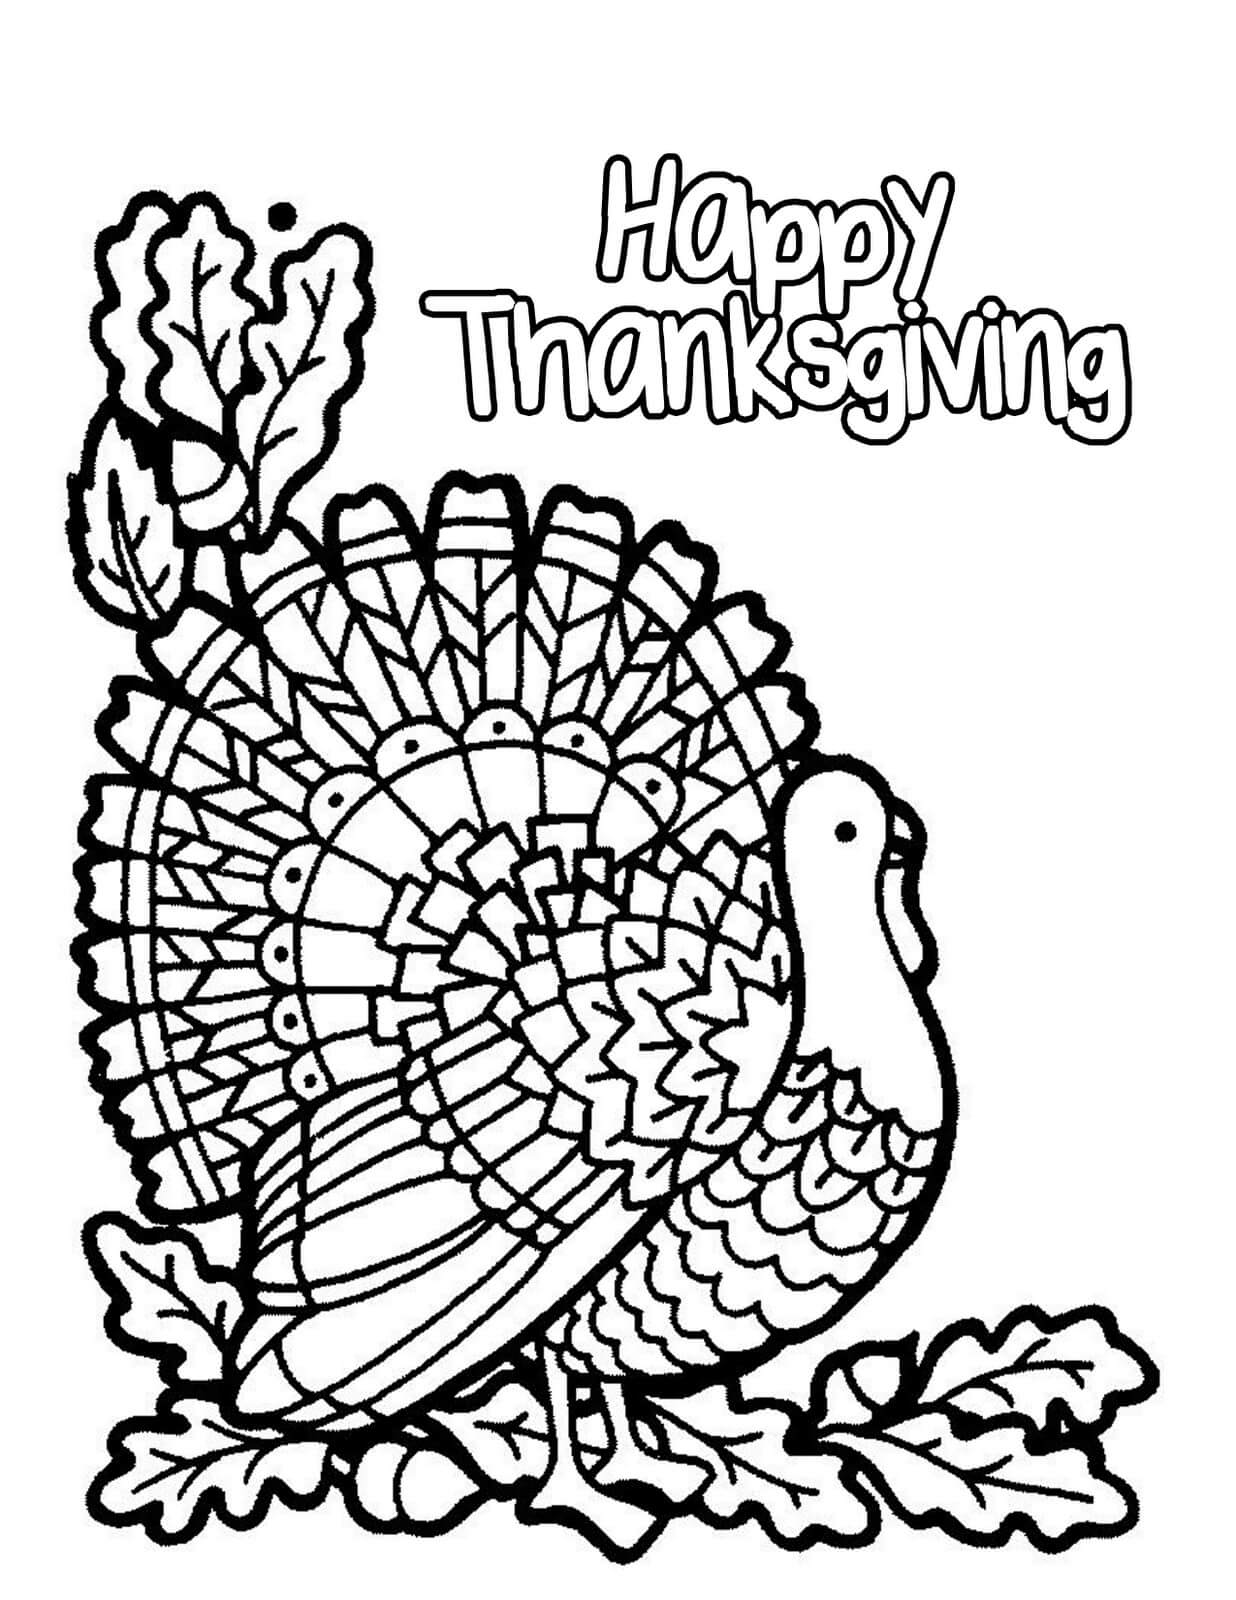 thanksgiving day coloring pages thanksgiving kids having fun in the thanksgiving day day thanksgiving coloring pages